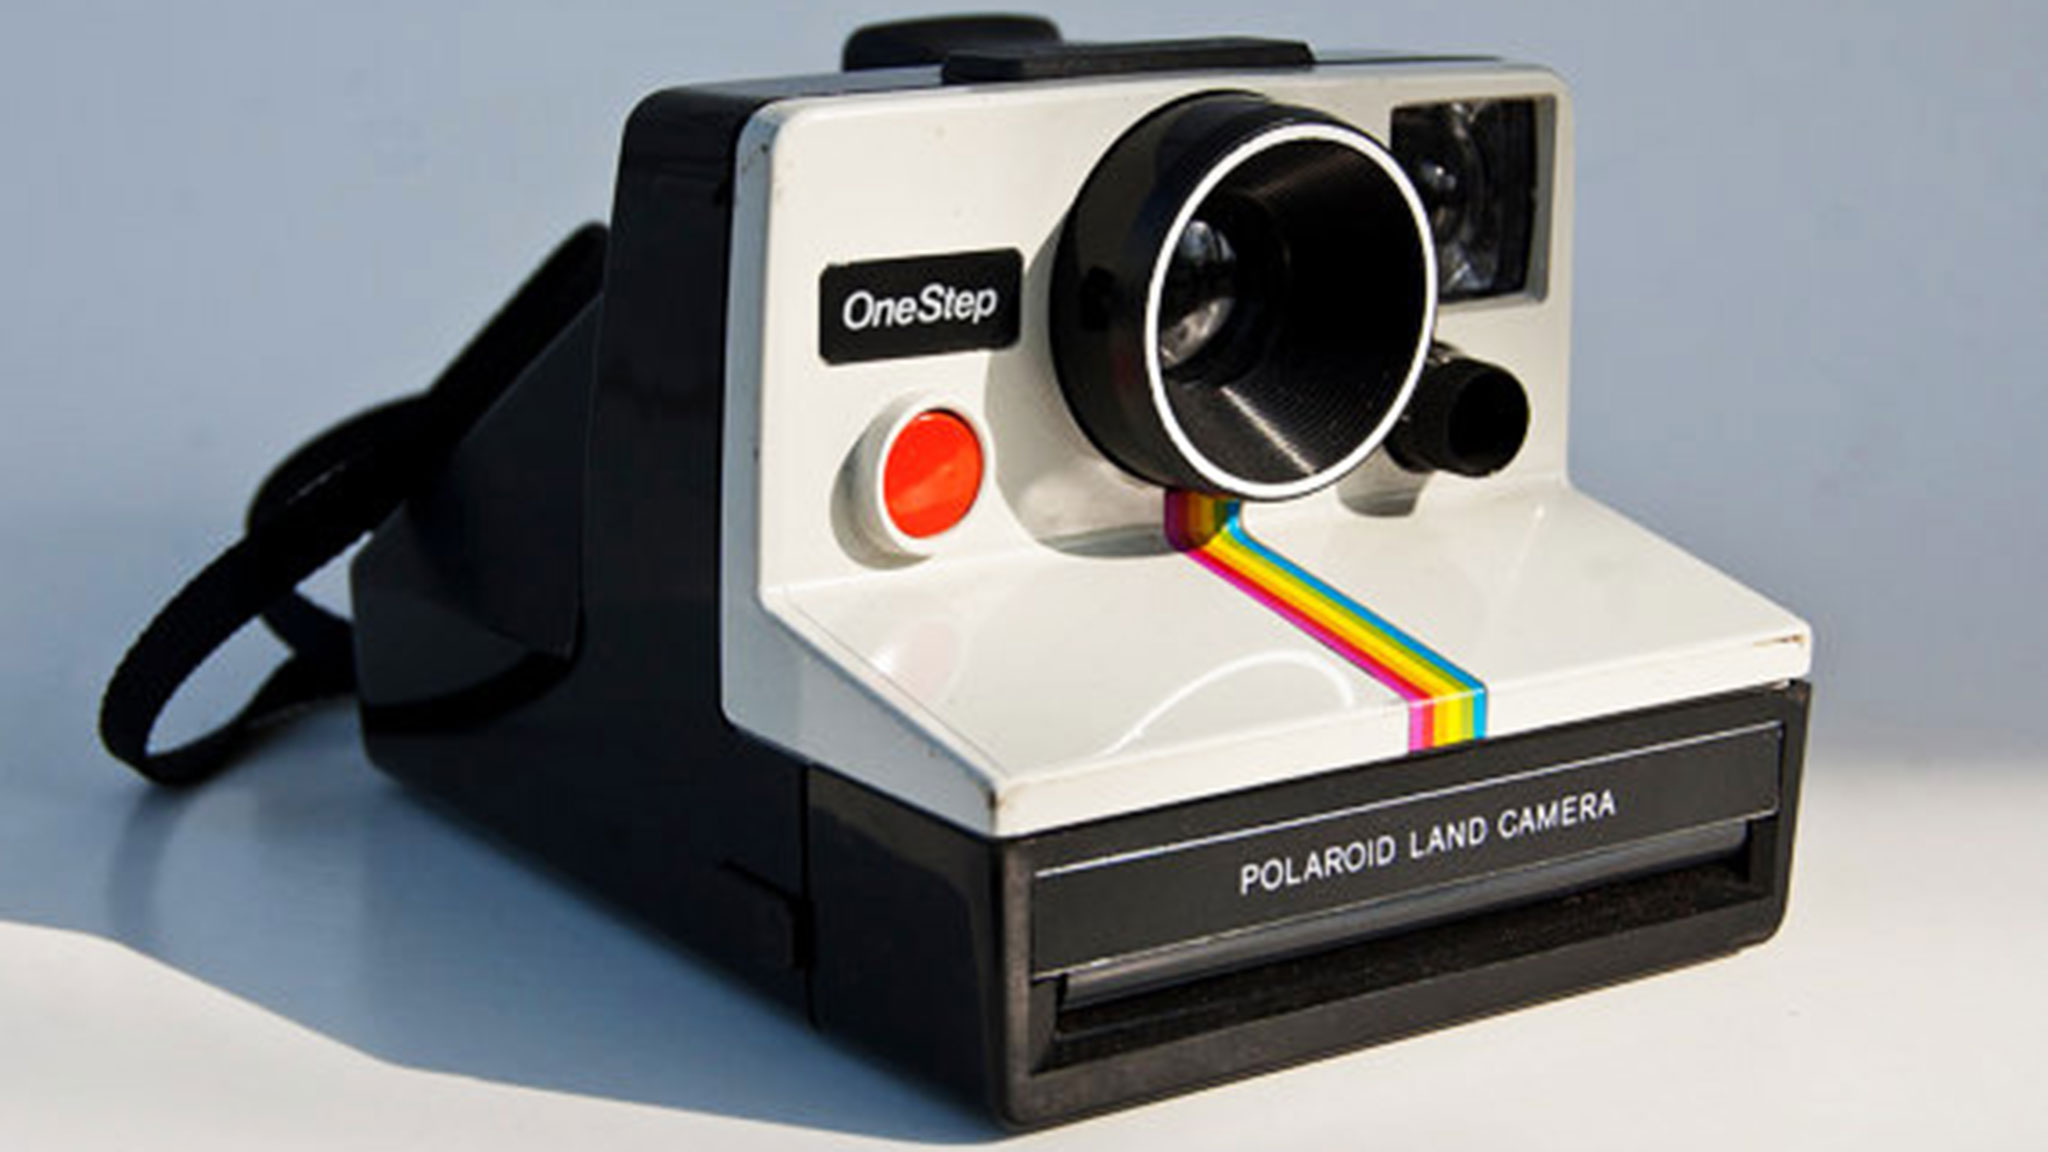 Design classic: the Polaroid OneStep Land Camera